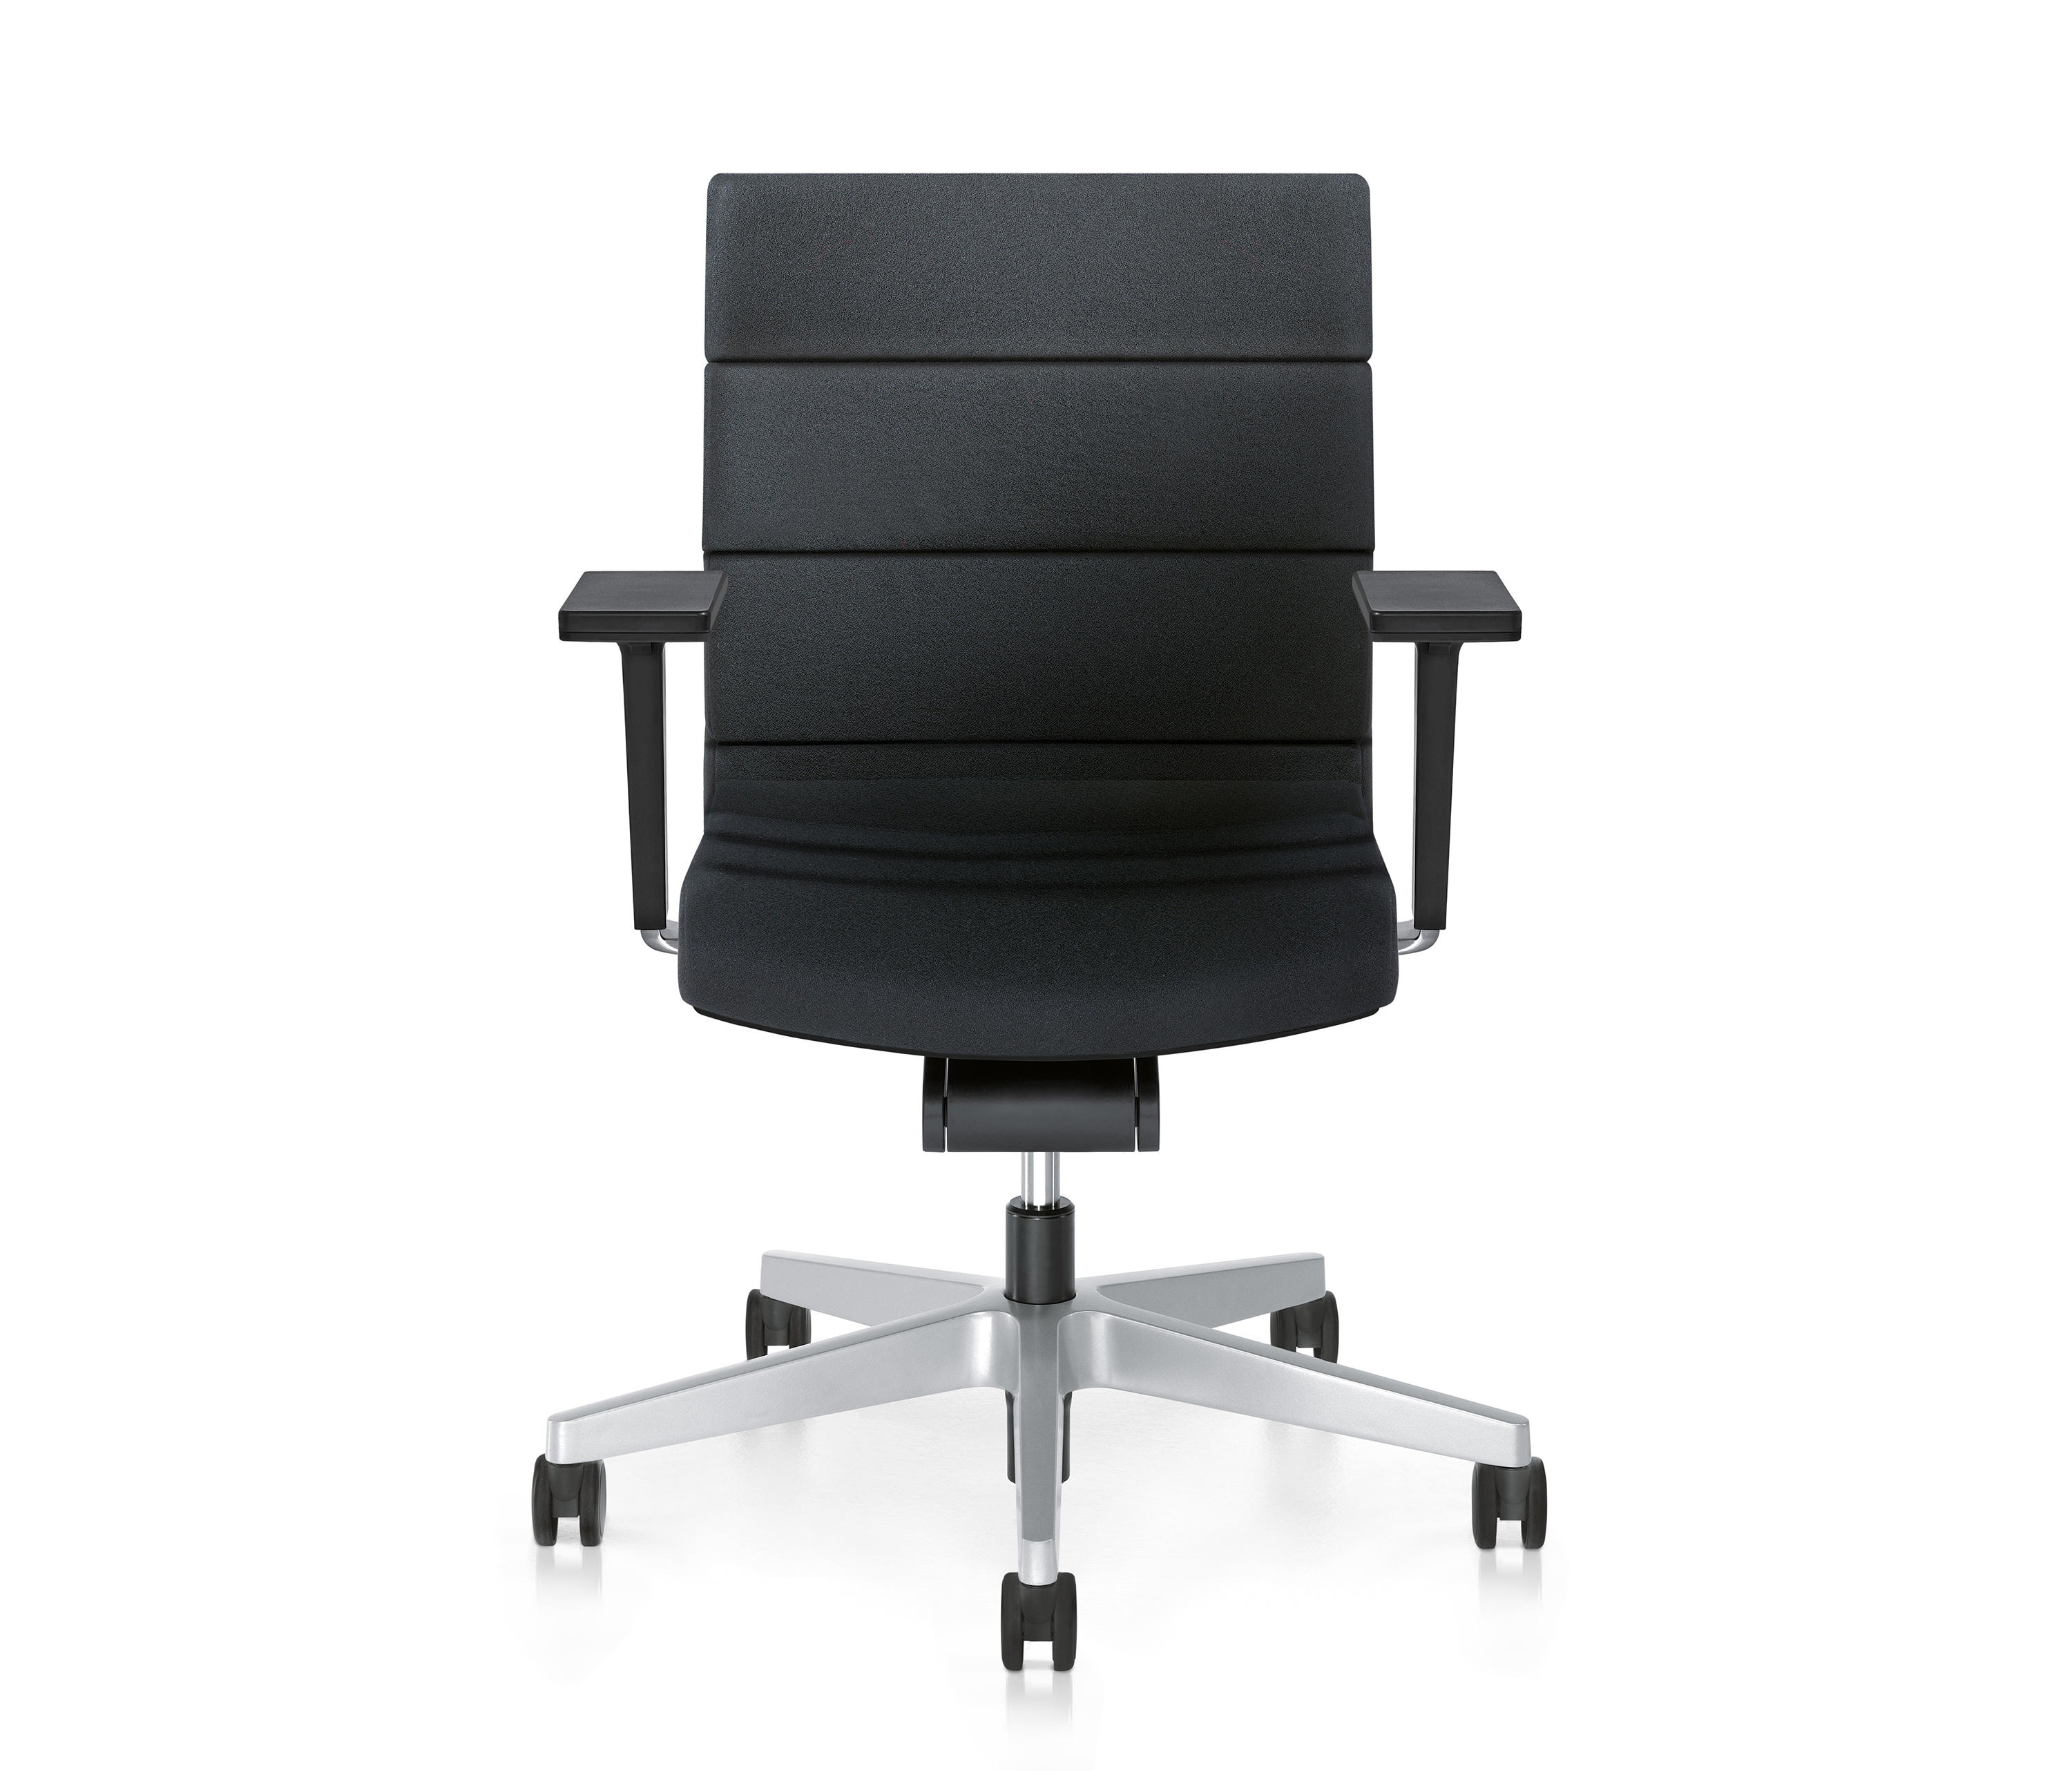 CHAMP | 1C62 - Task chairs from Interstuhl Büromöbel GmbH & Co. KG ...